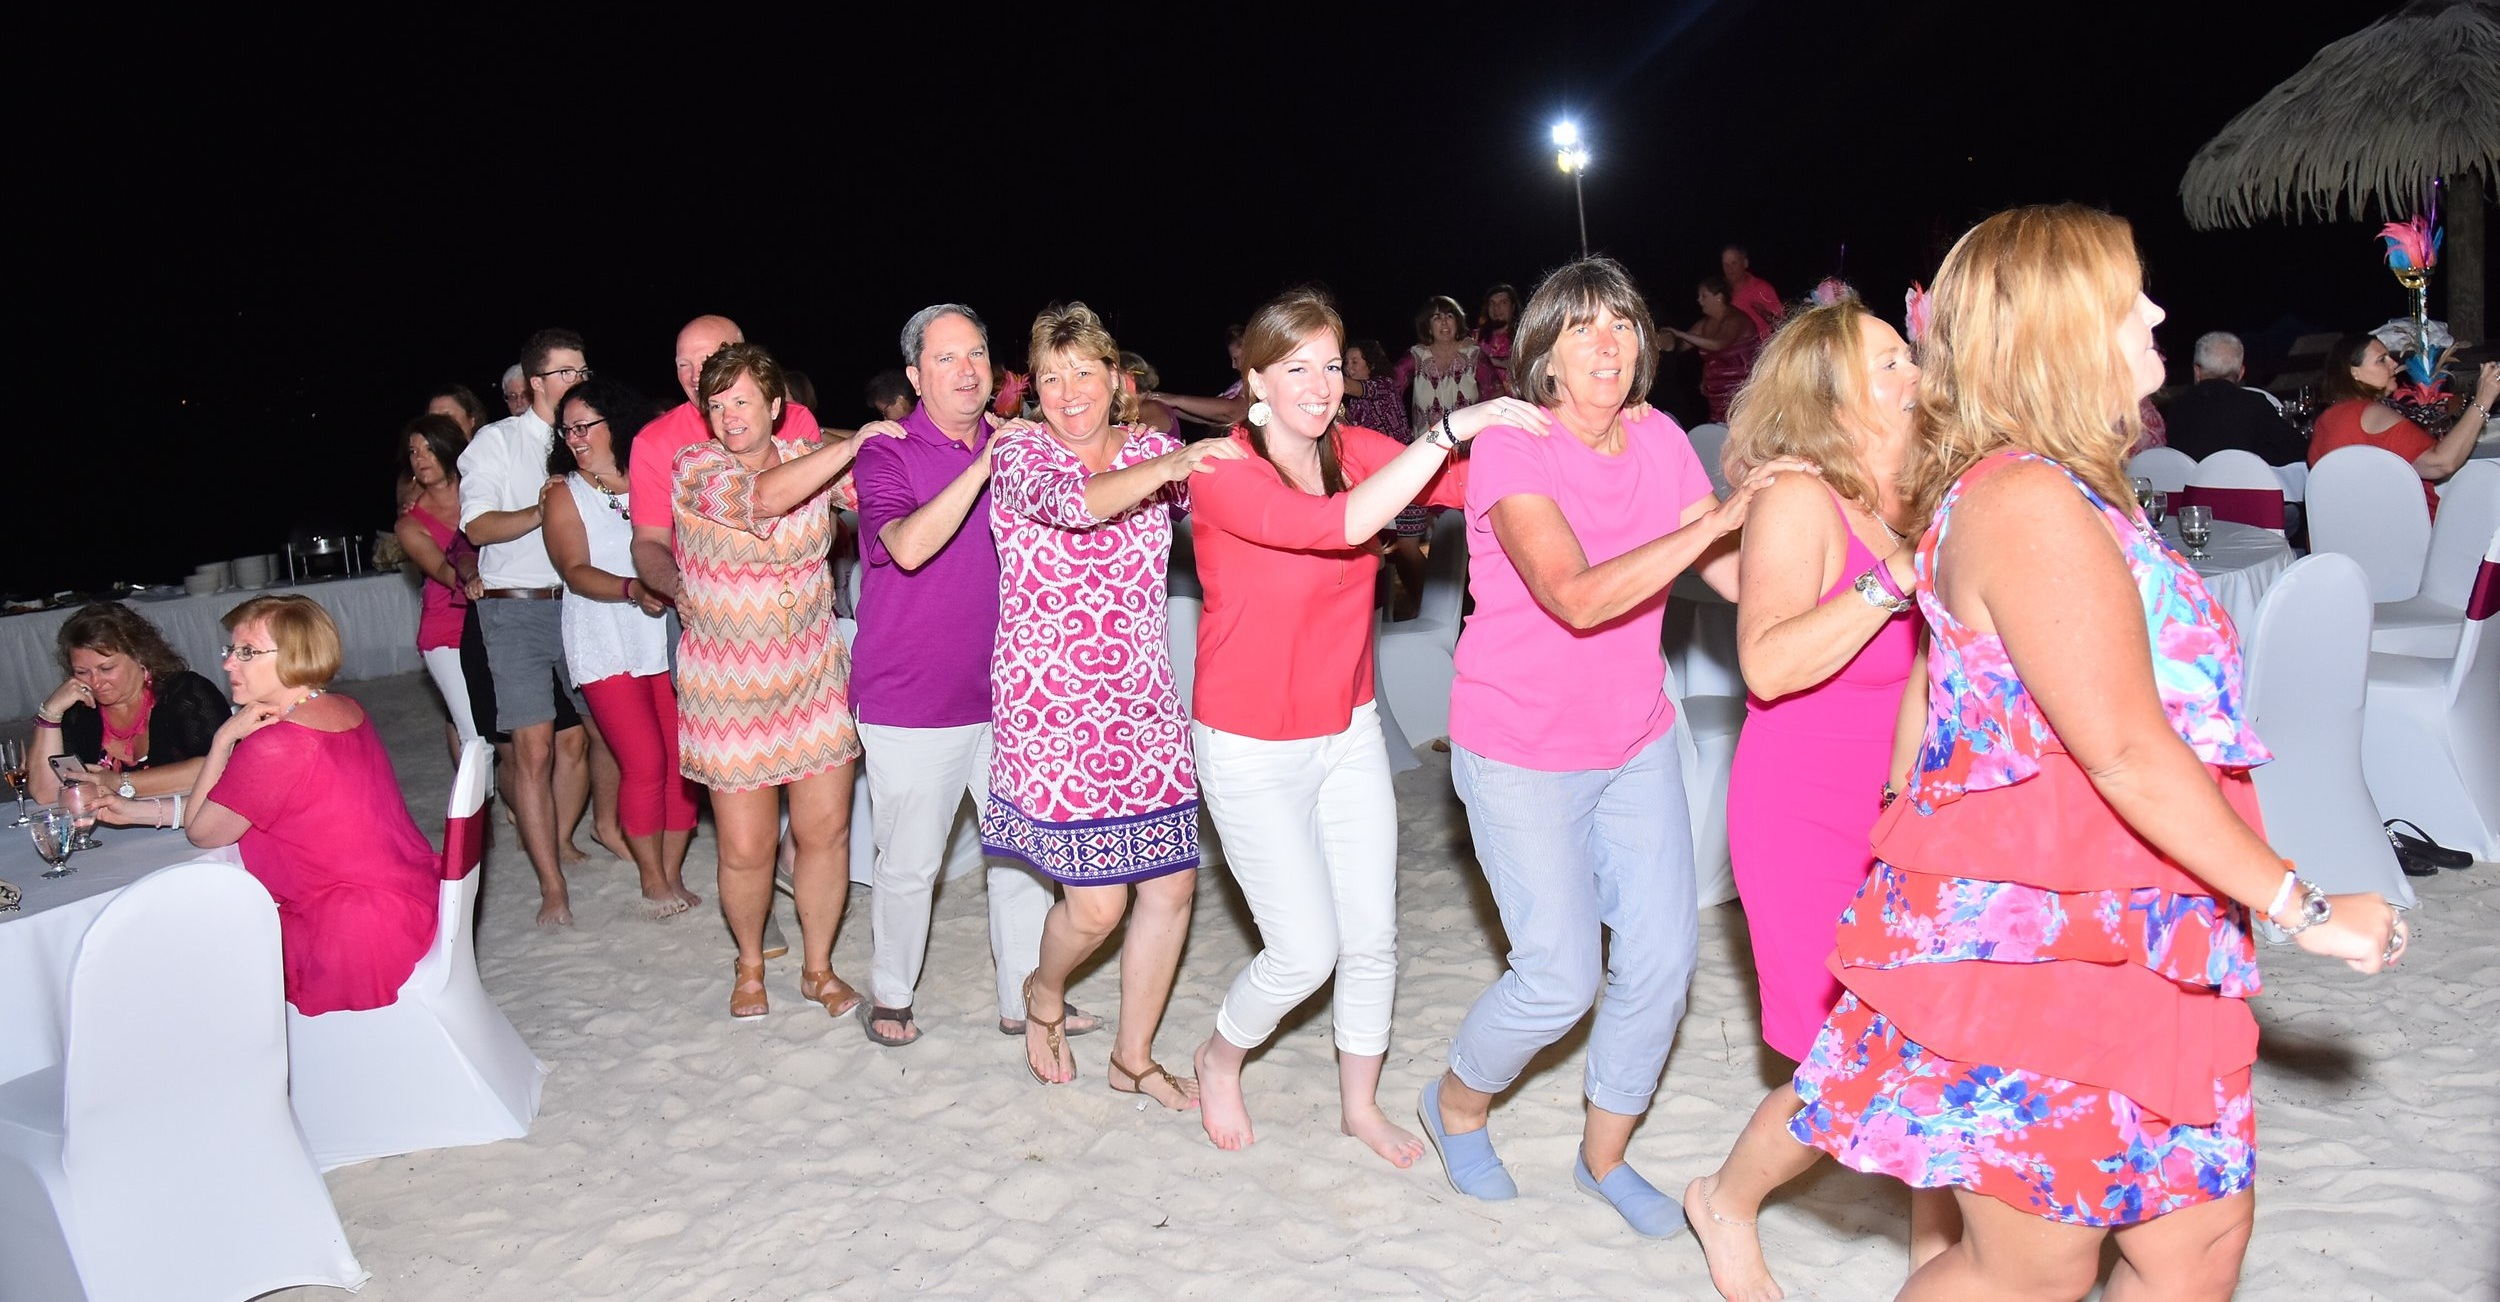 Enjoying a conga line after dinner on the beach